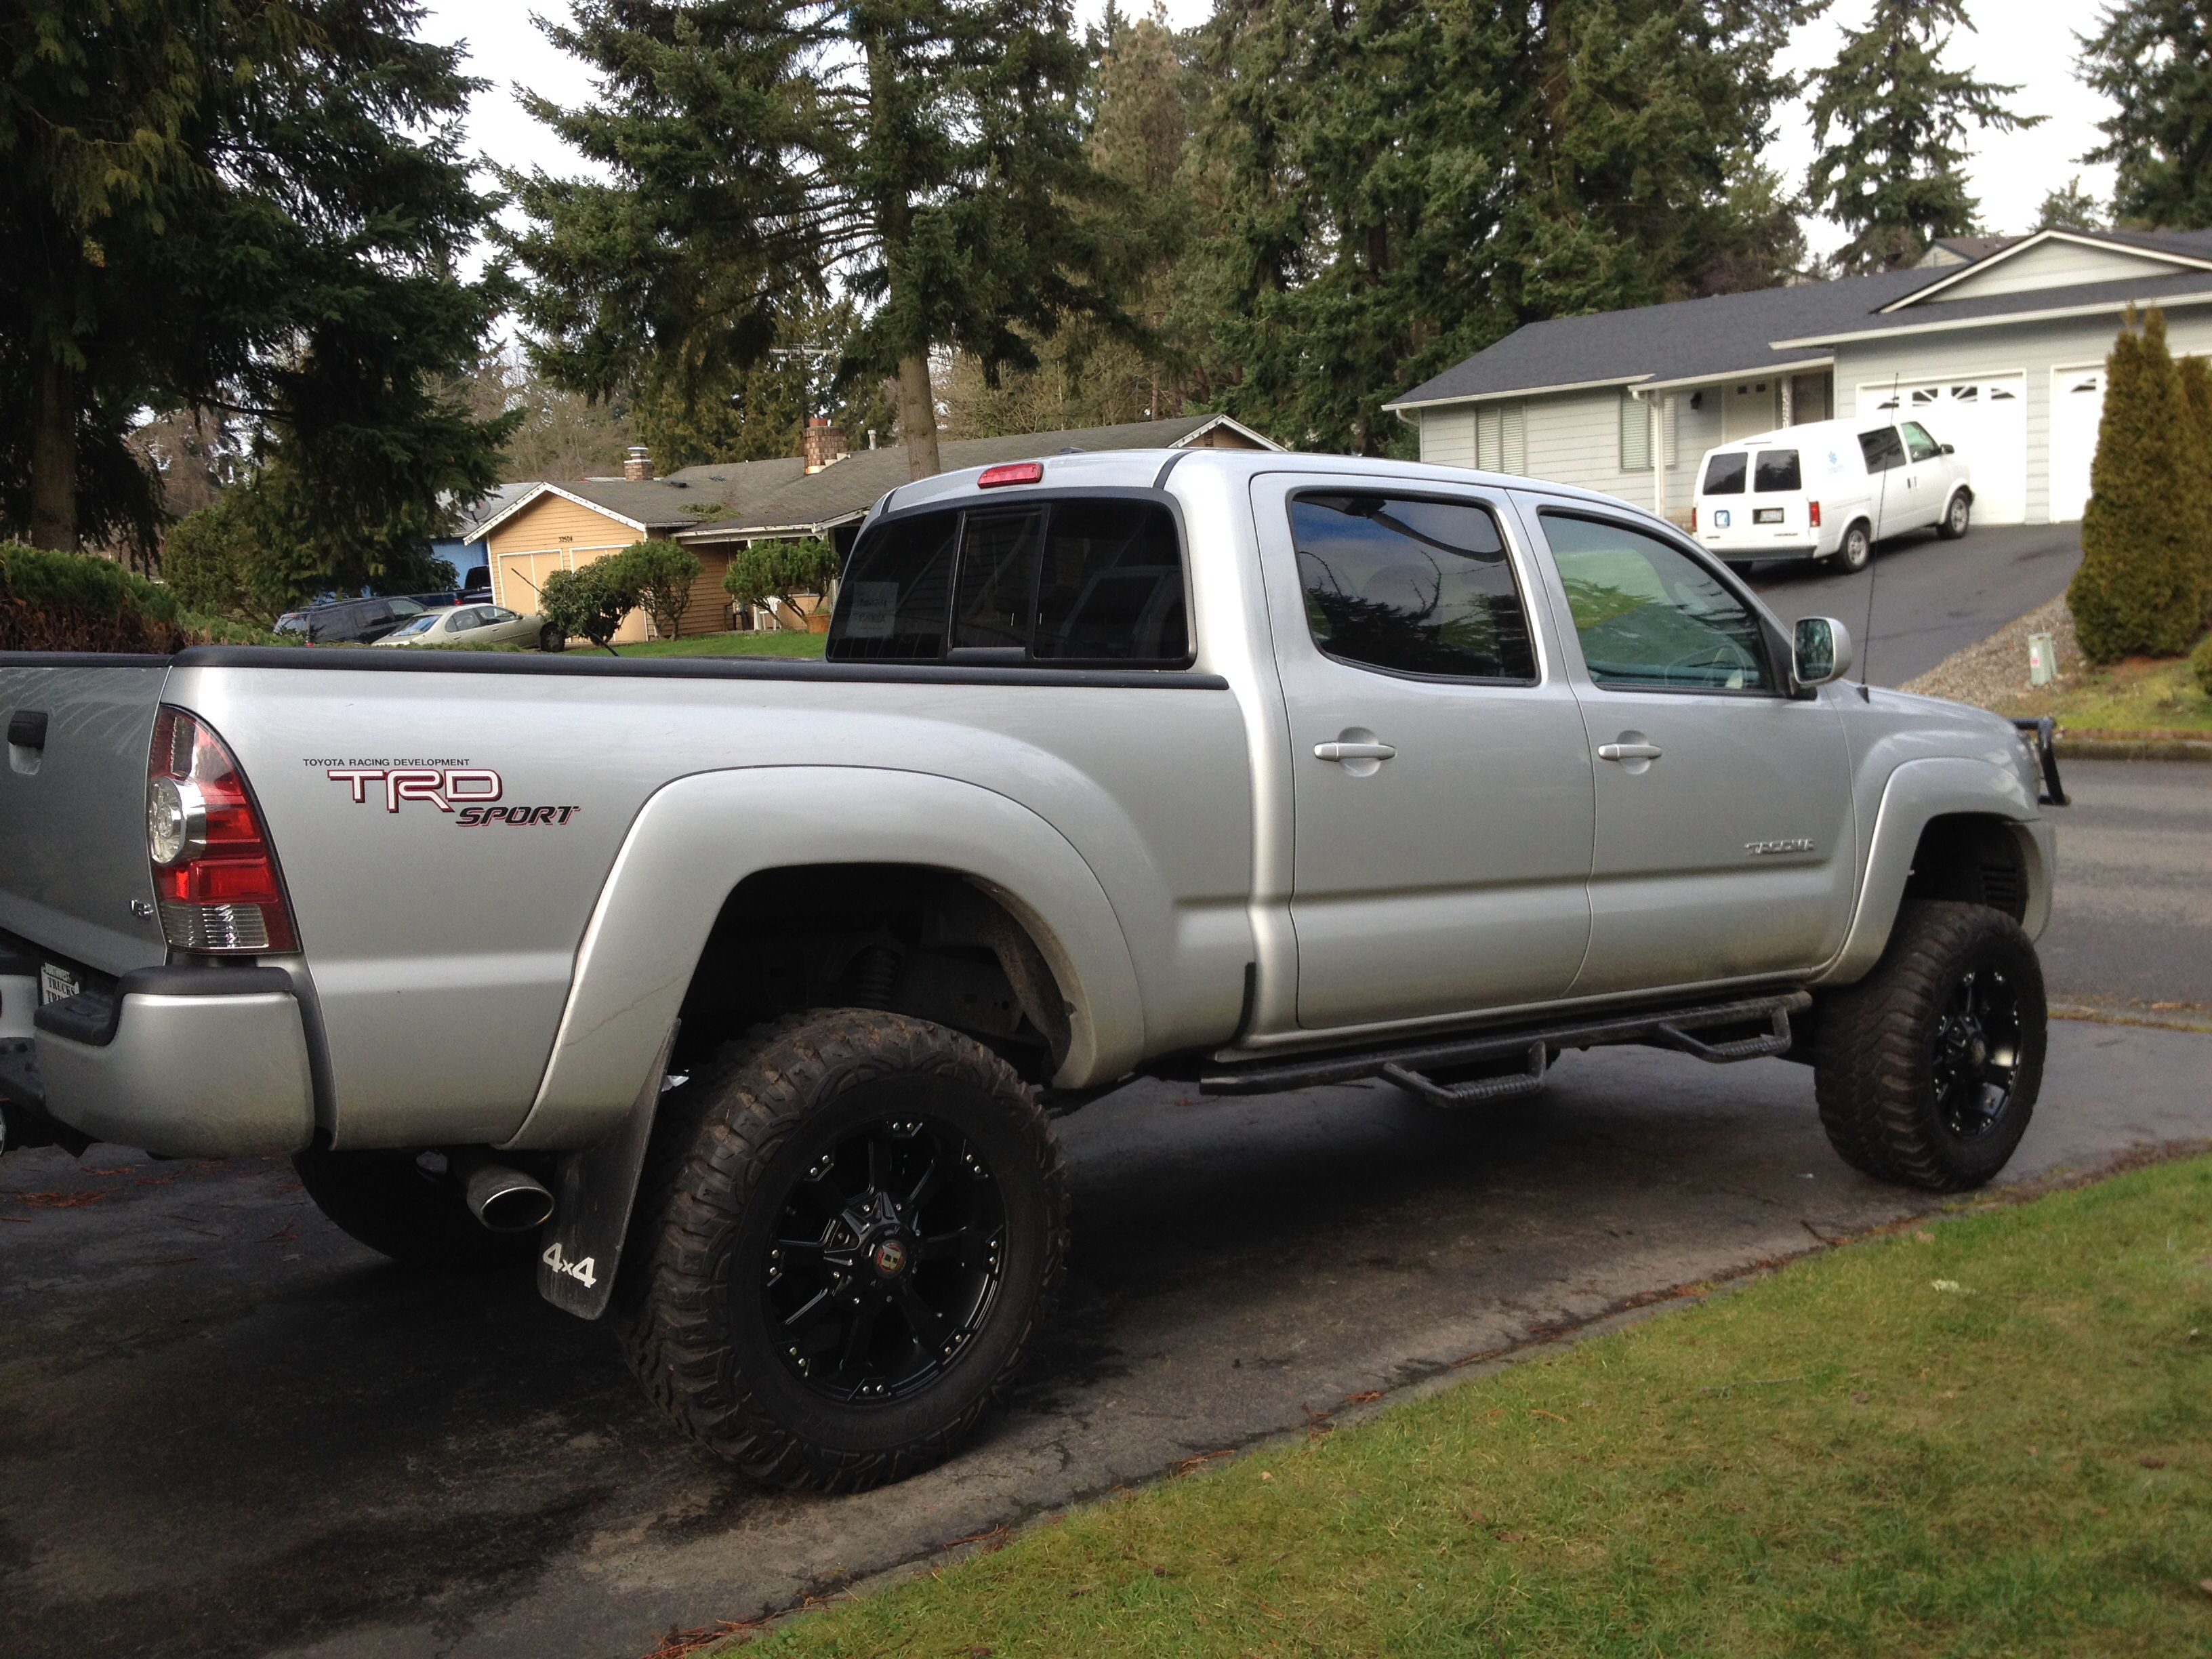 My New Rig 2011 ToYota lifted long bed Toyota